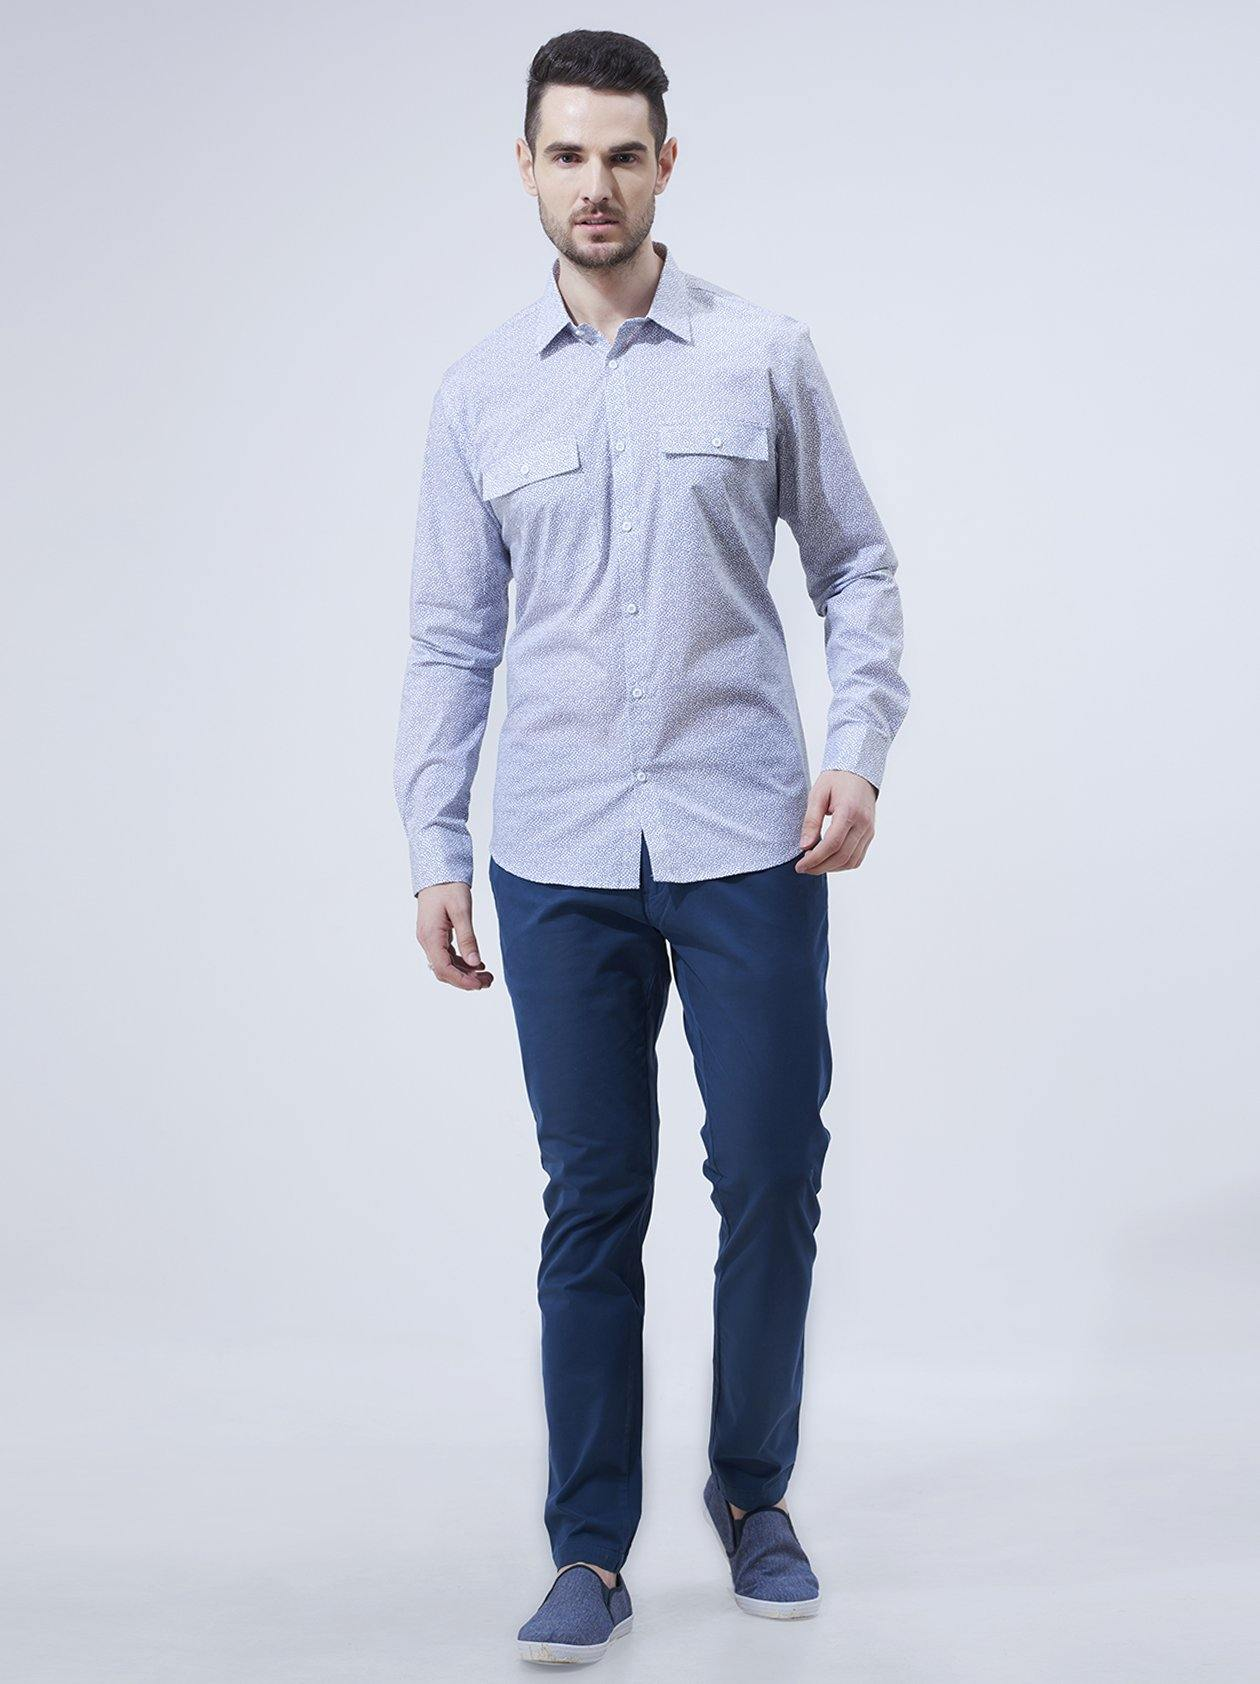 Mens White Printed Casual Shirt